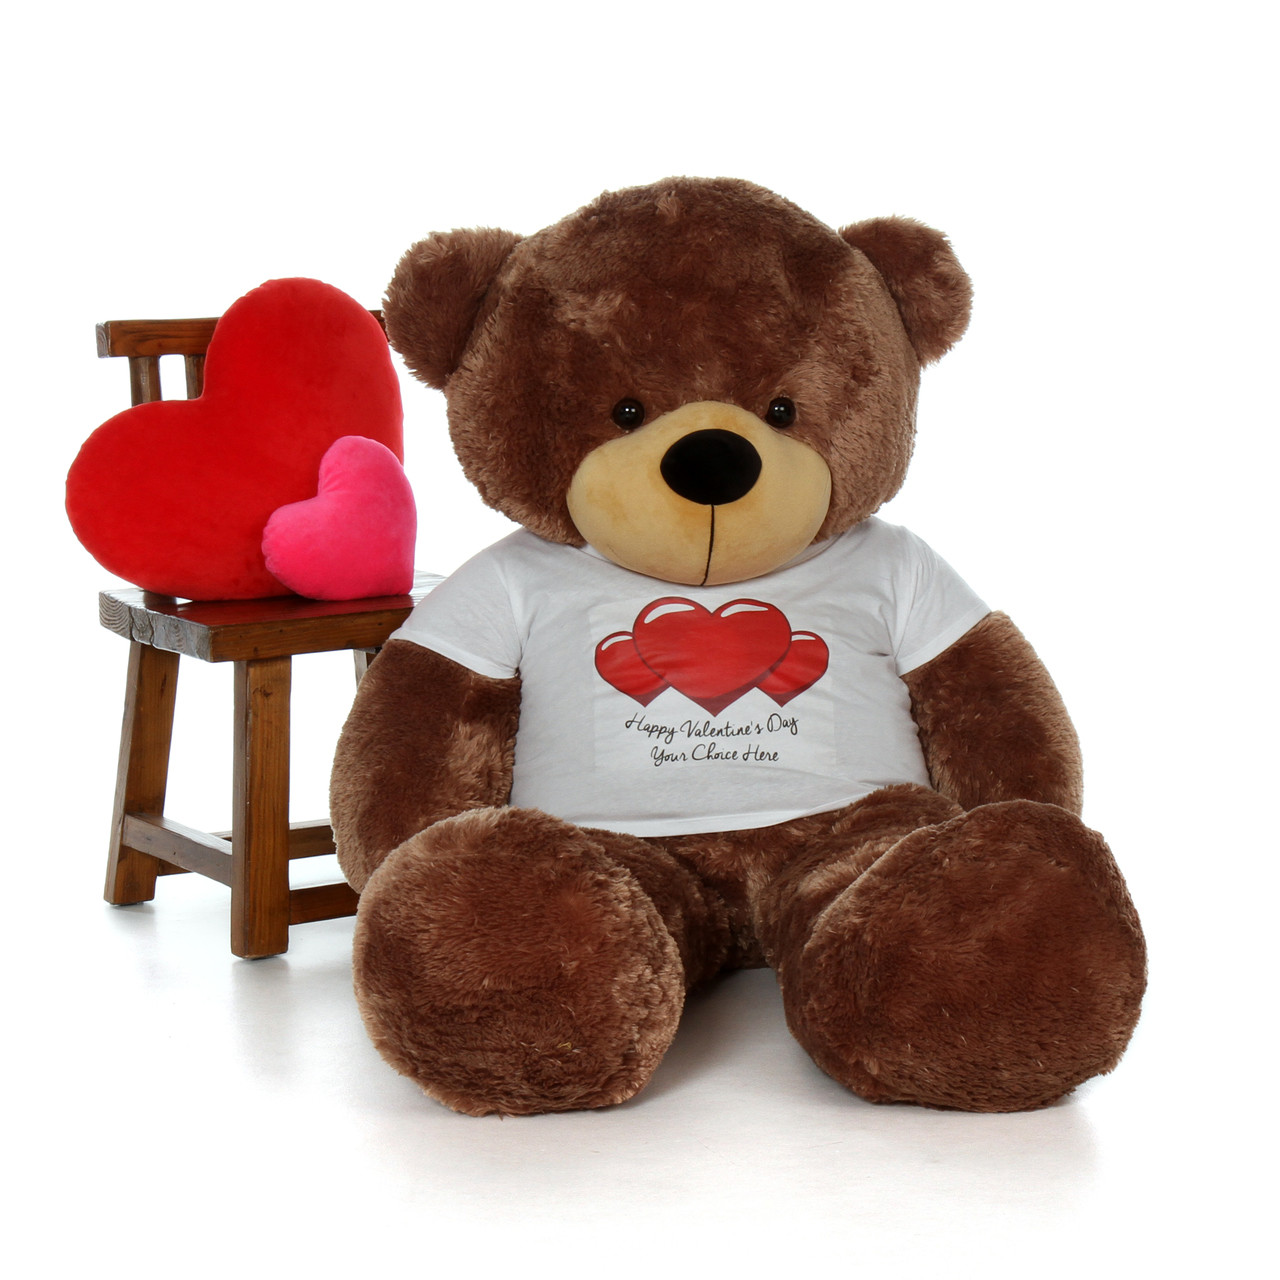 5ft life size teddy bear wearing customized happy valentines day shirt and choose your favorite fur color - Giant Teddy Bear For Valentines Day